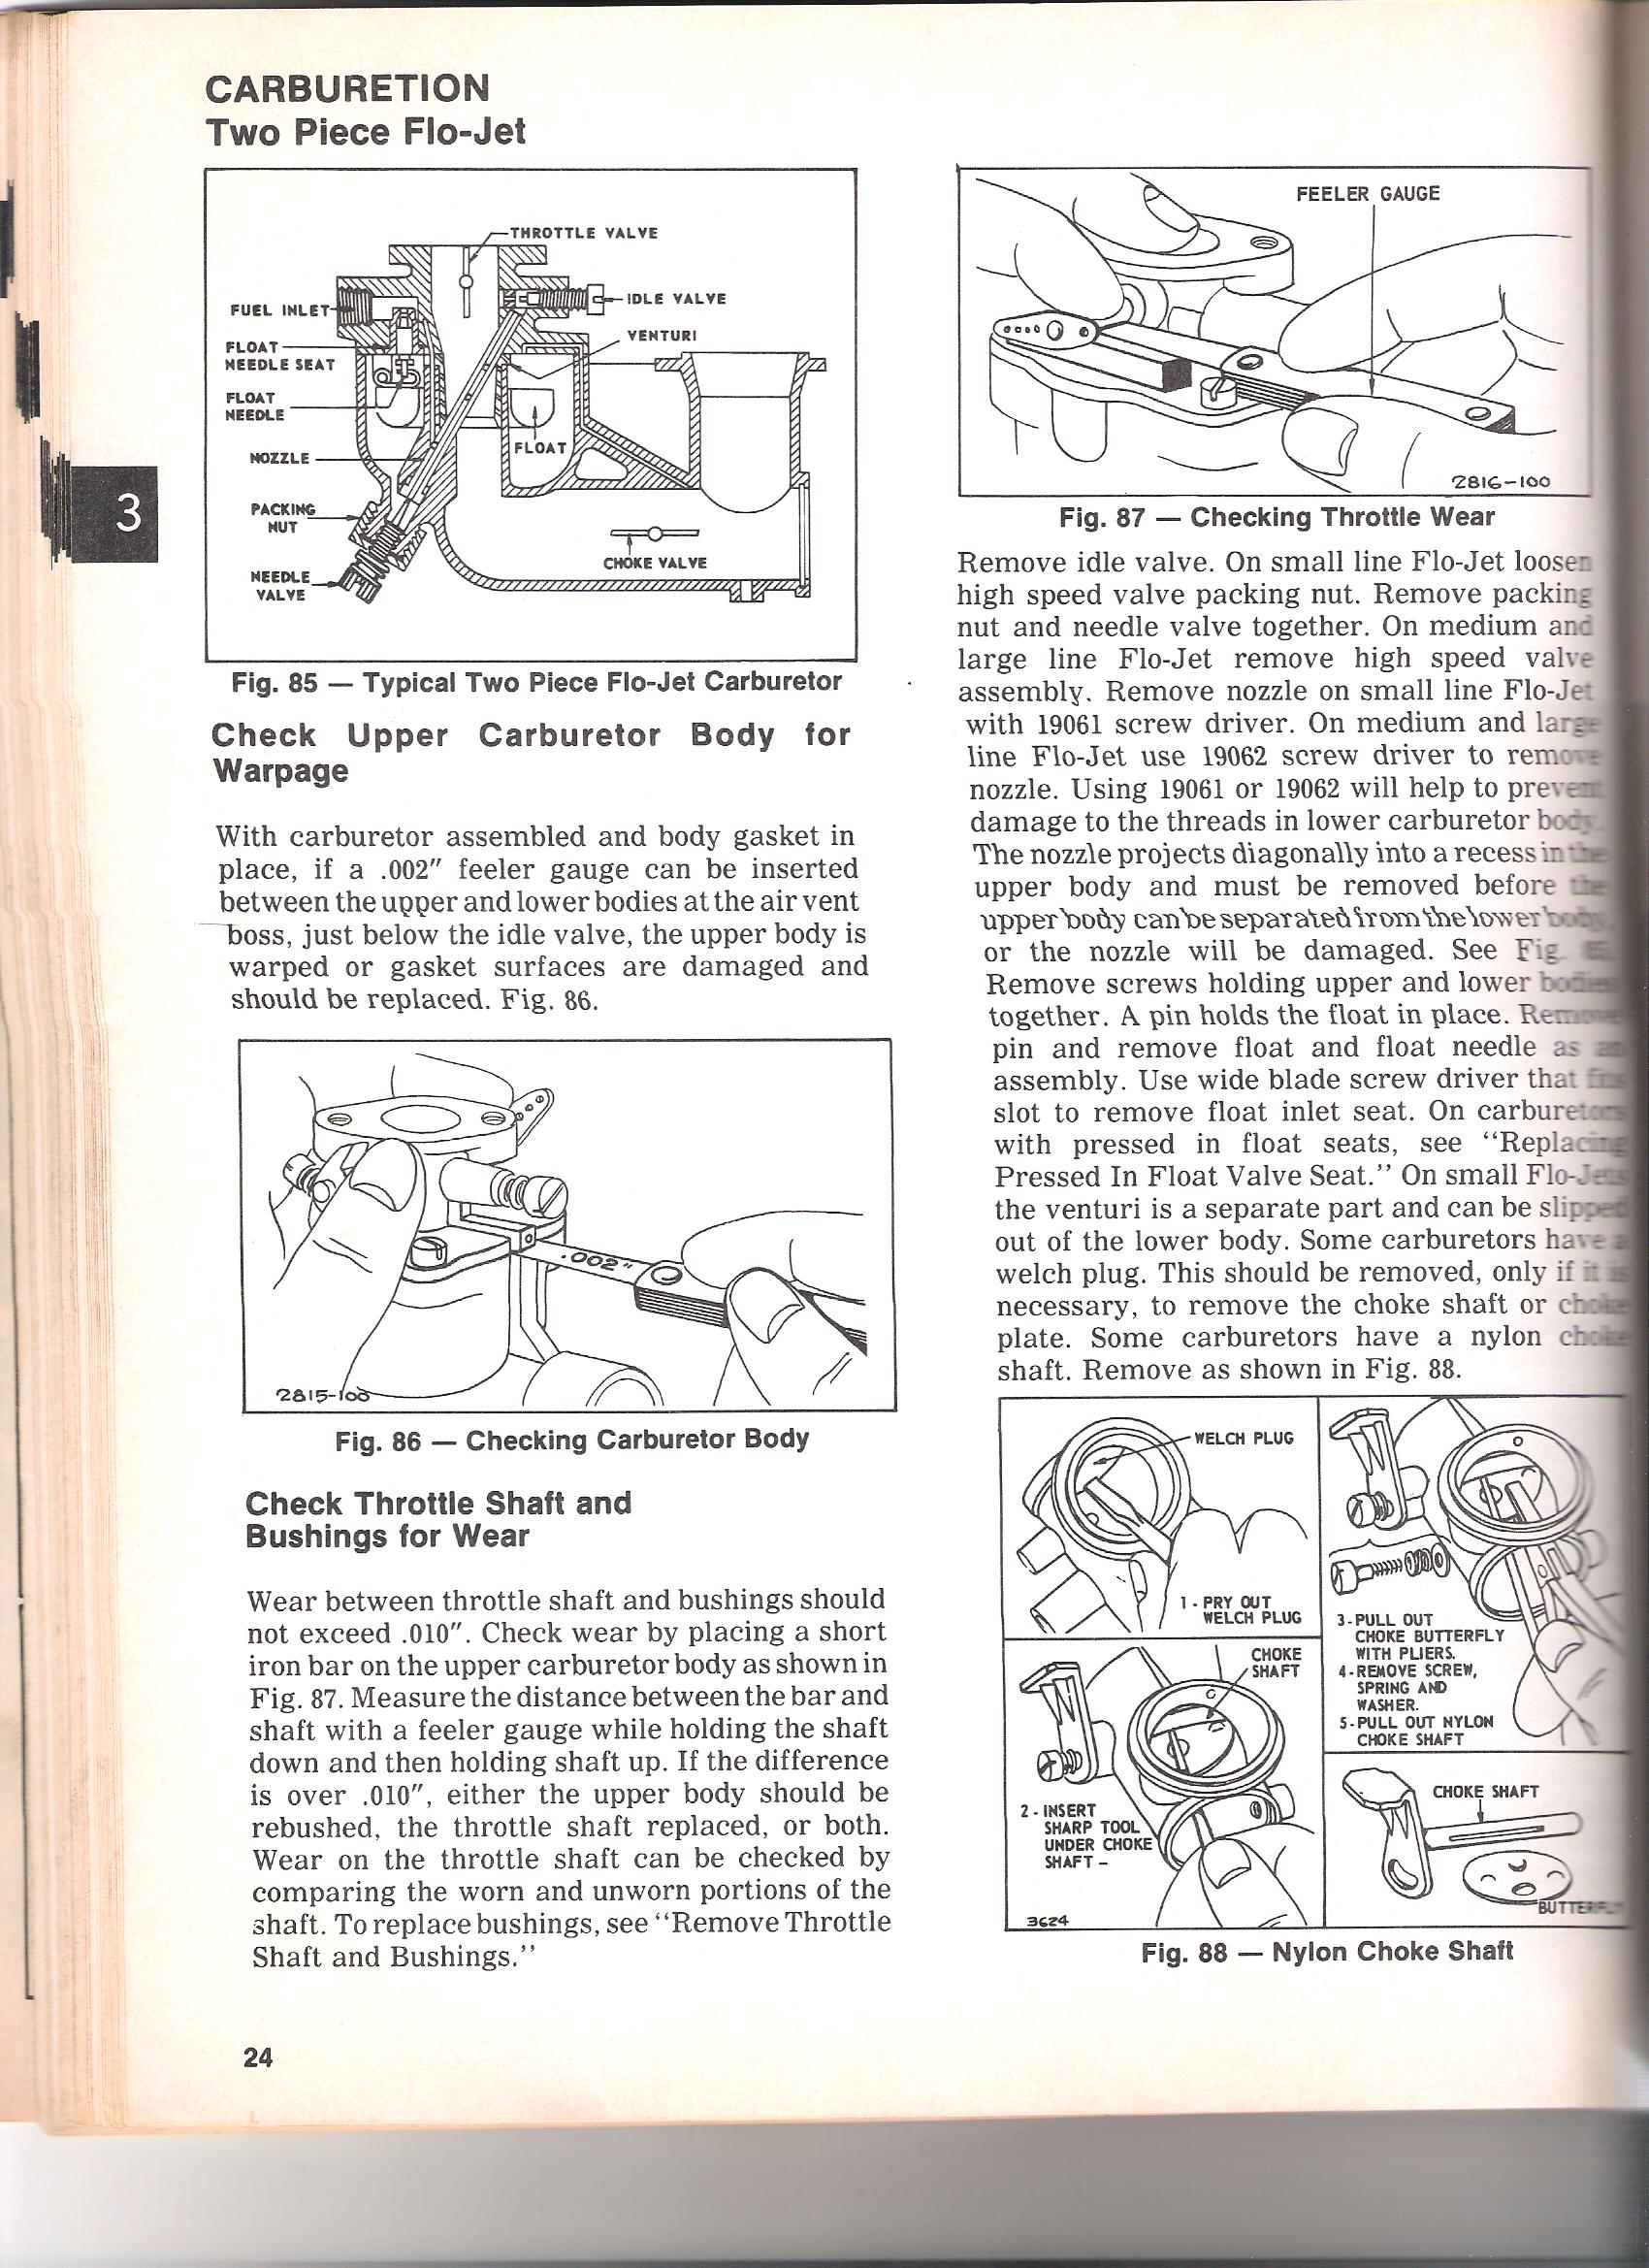 15 Hp Briggs And Stratton Engine Diagram - 24h schemes